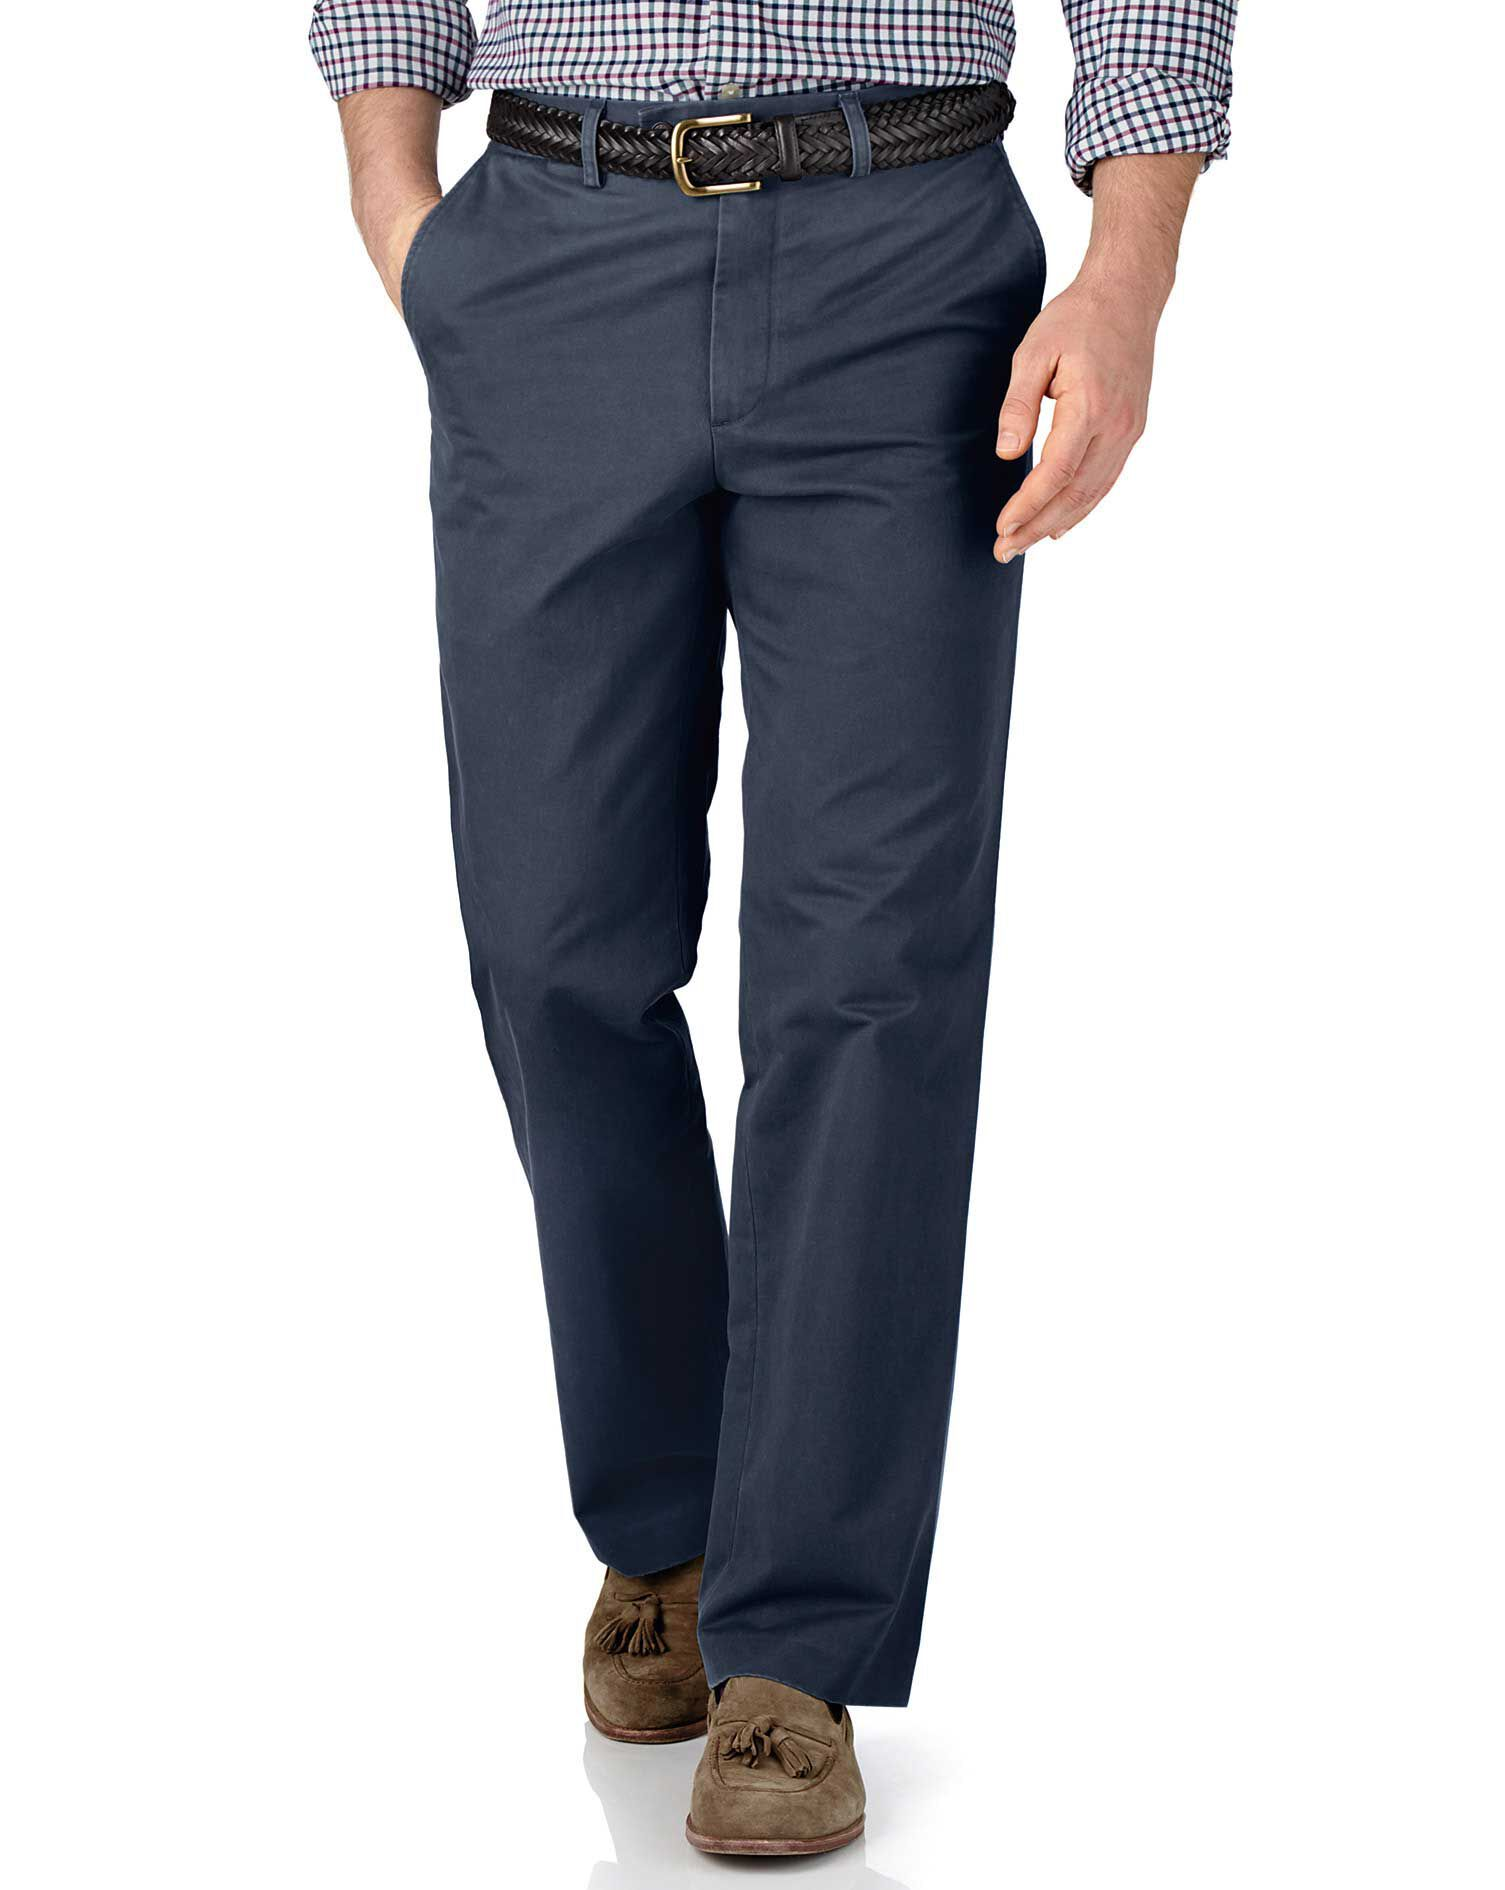 Airforce Blue Classic Fit Flat Front Cotton Chino Trousers Size W42 L34 by Charles Tyrwhitt